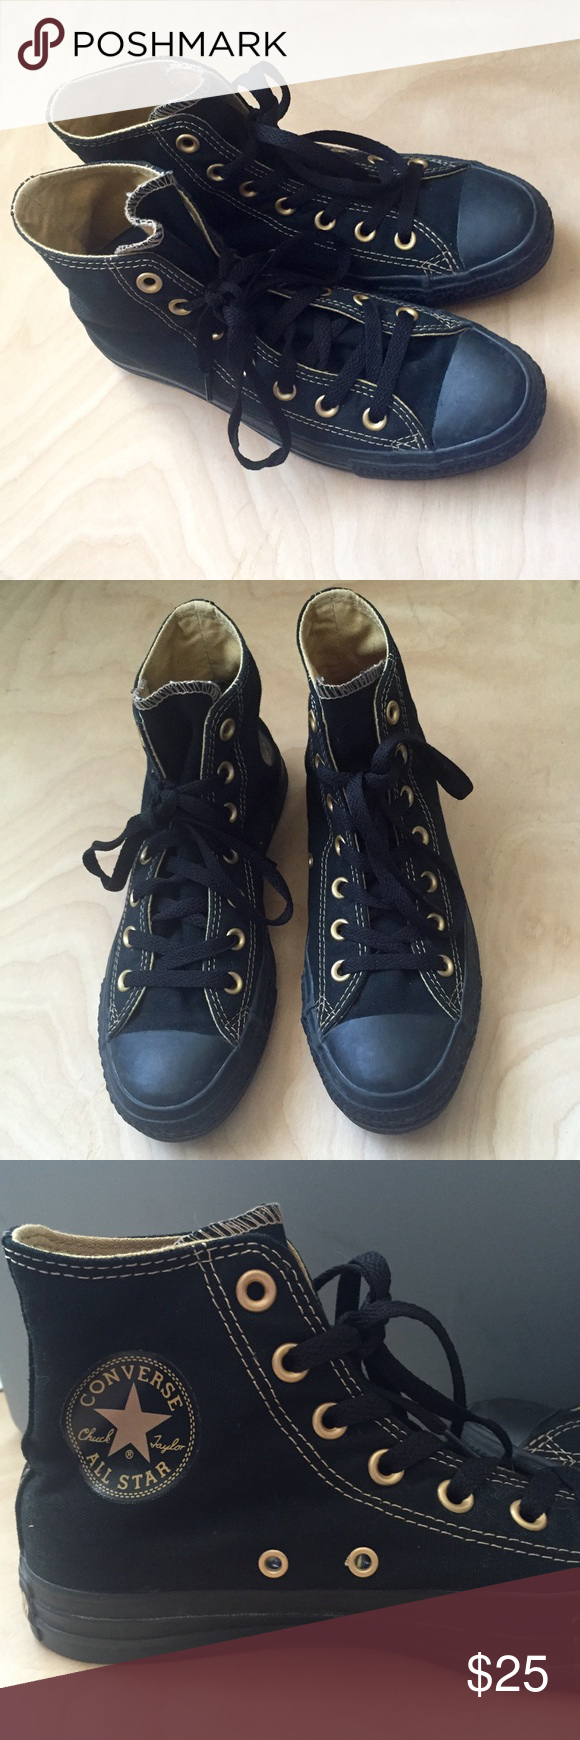 451a85175531 ALL BLACK Converse Sneakers Chuck Taylors Shoes 7 Black on black with gold  stitching and grommets. Great condition- only been worn a few times. Women s  size ...